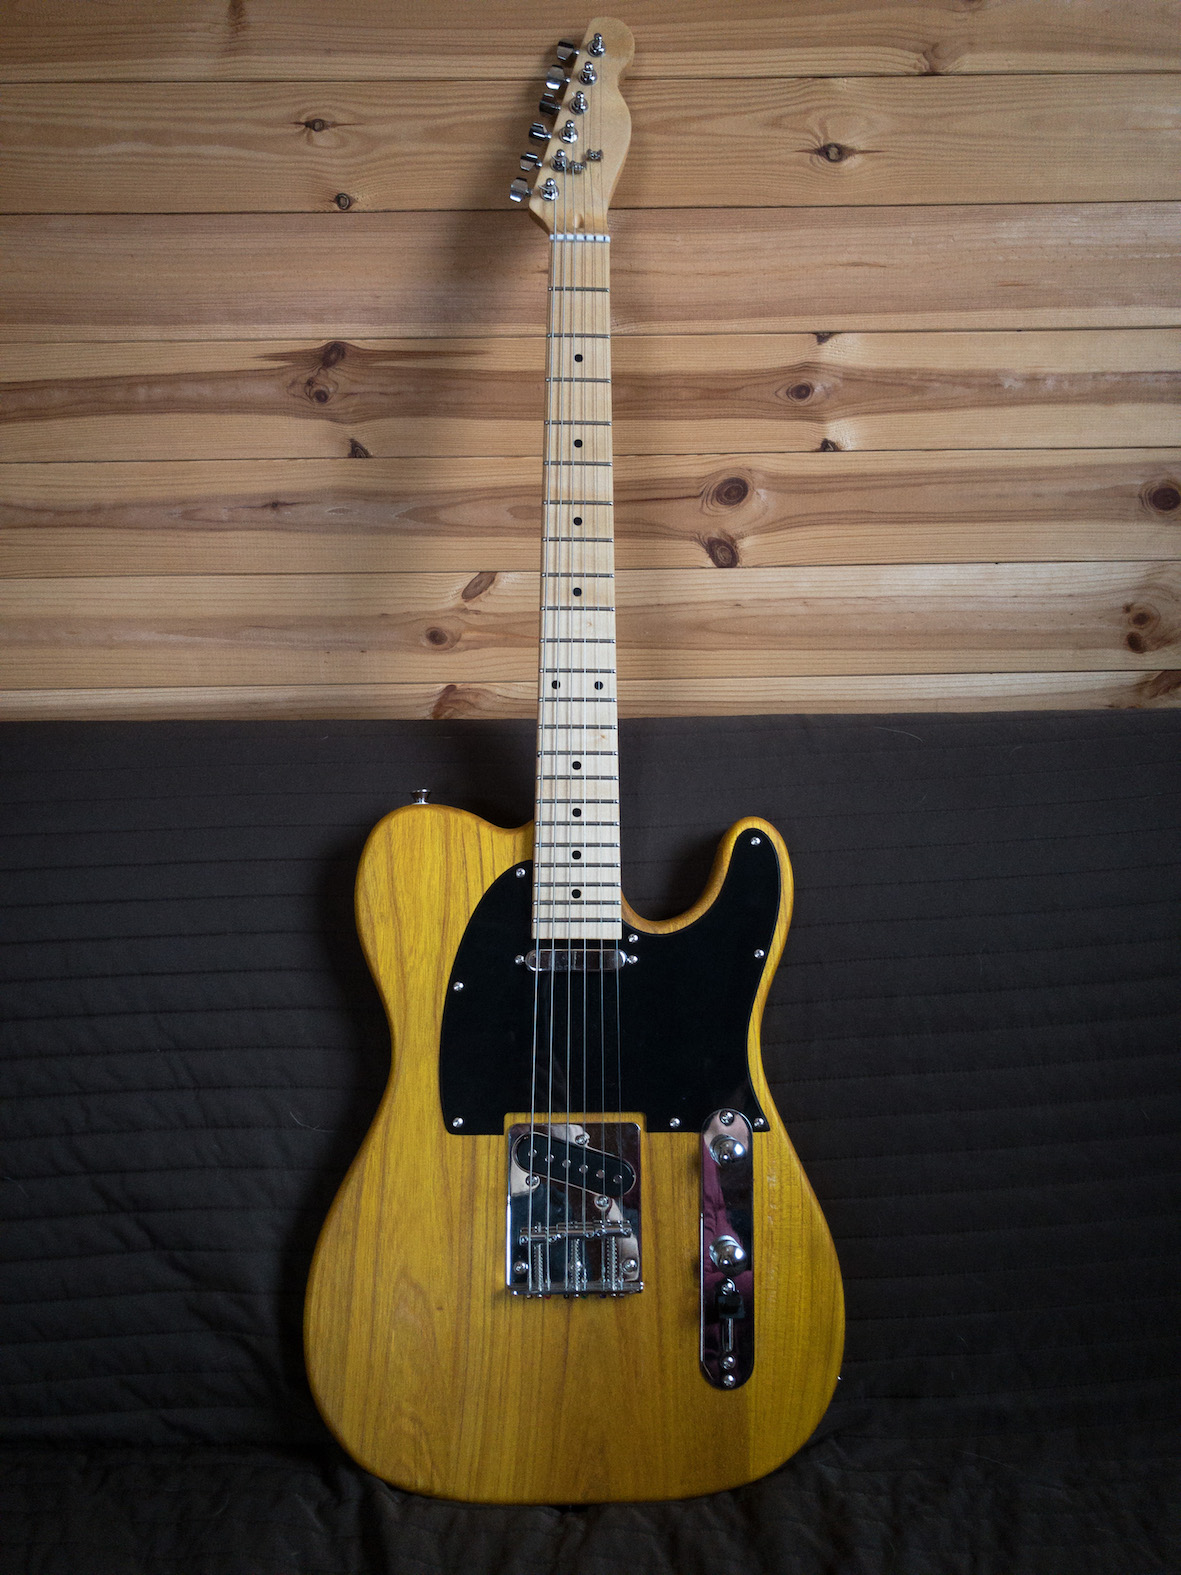 Telecaster Love Thread, No Archtops Allowed-apc_2299-jpg